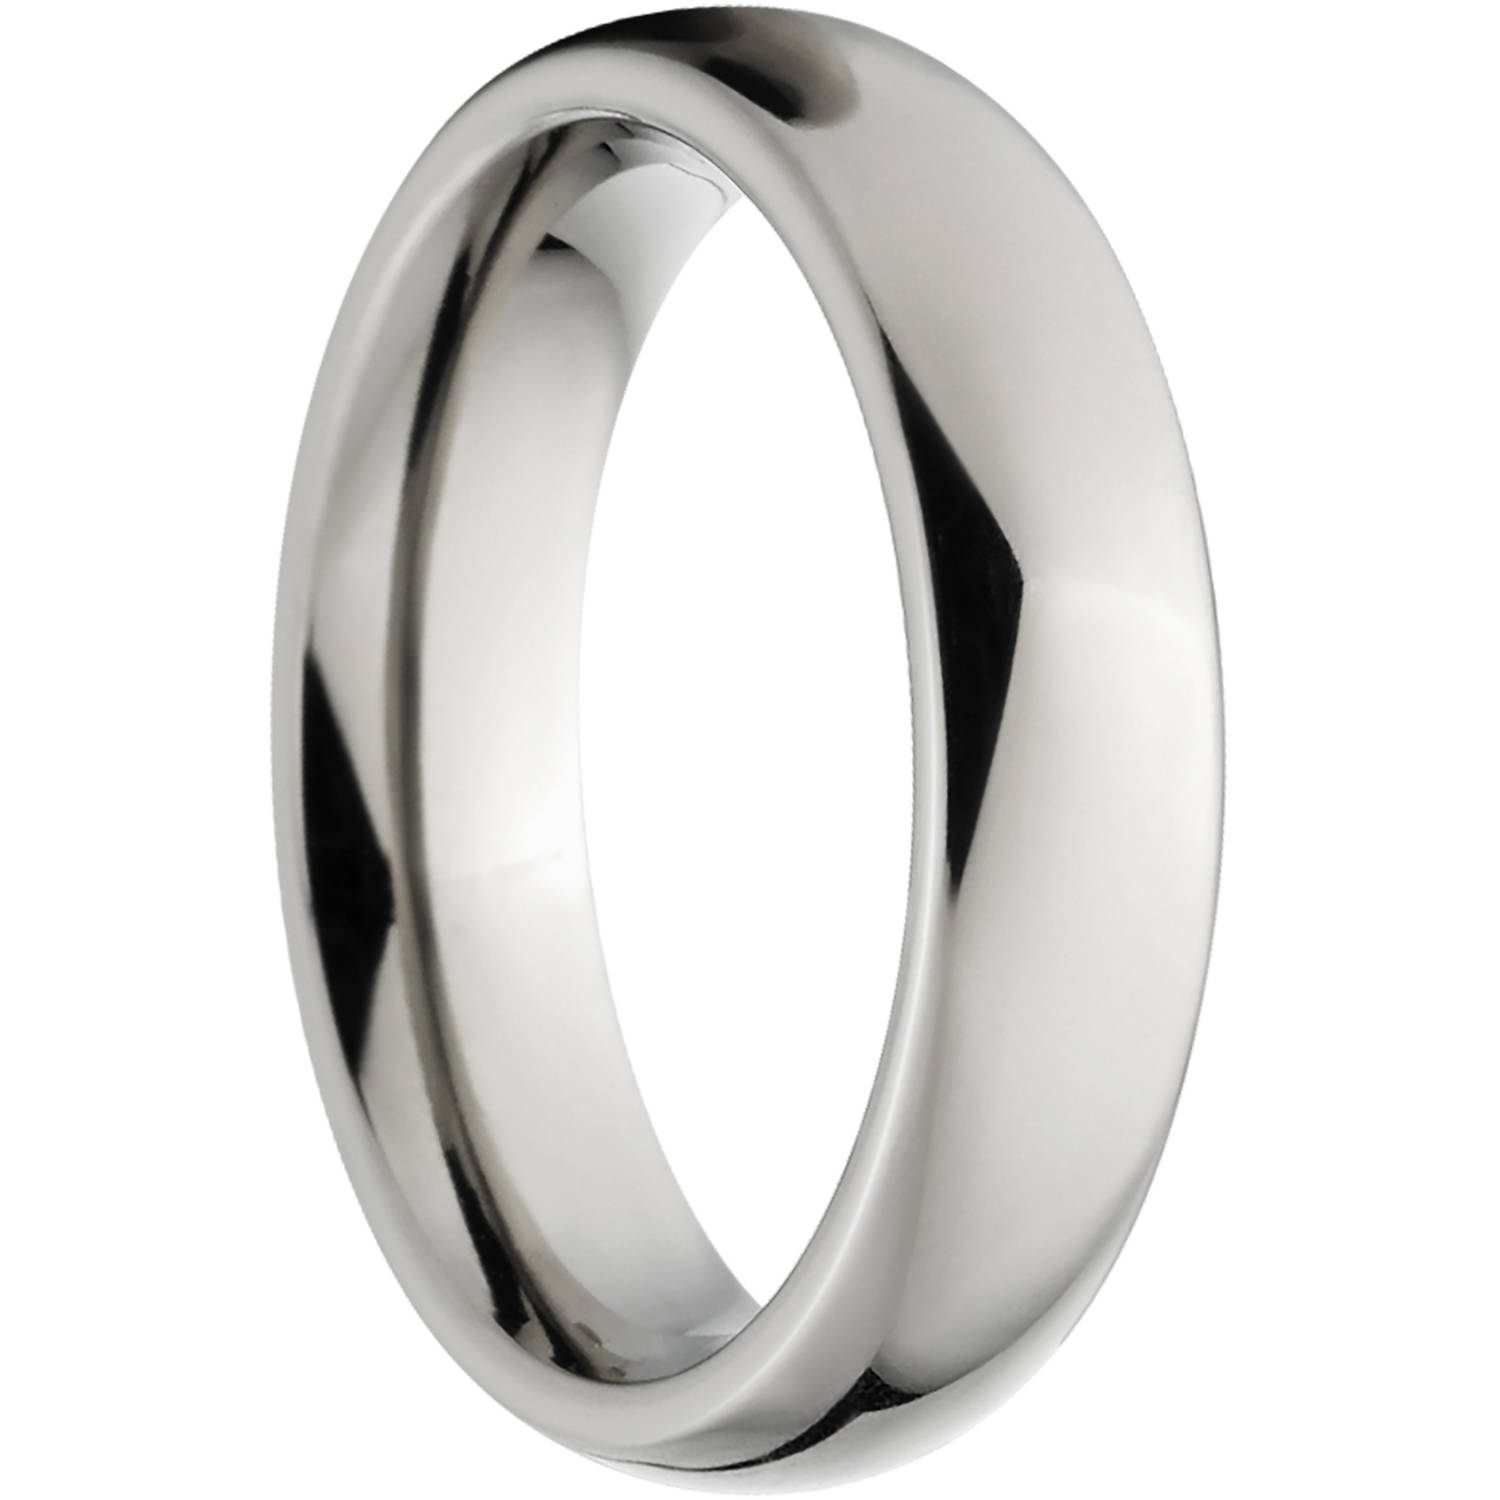 polished 4mm titanium wedding band with fort fit design